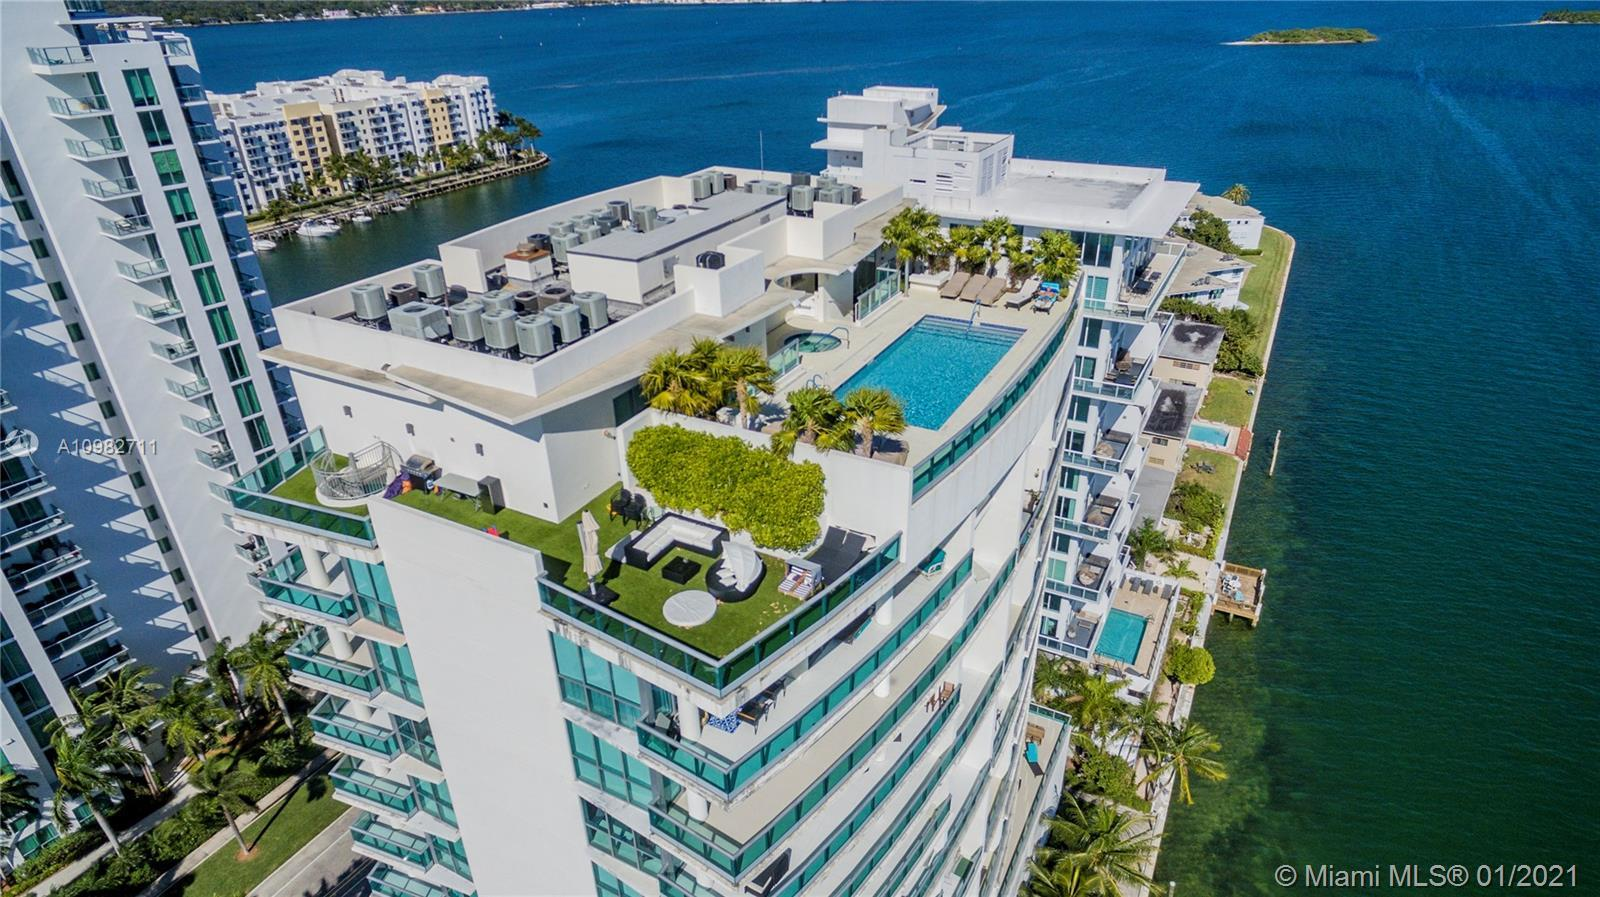 Stunning waterfront apartment with luxurious finishes and beautiful views of Biscayne Bay, Miami Bea